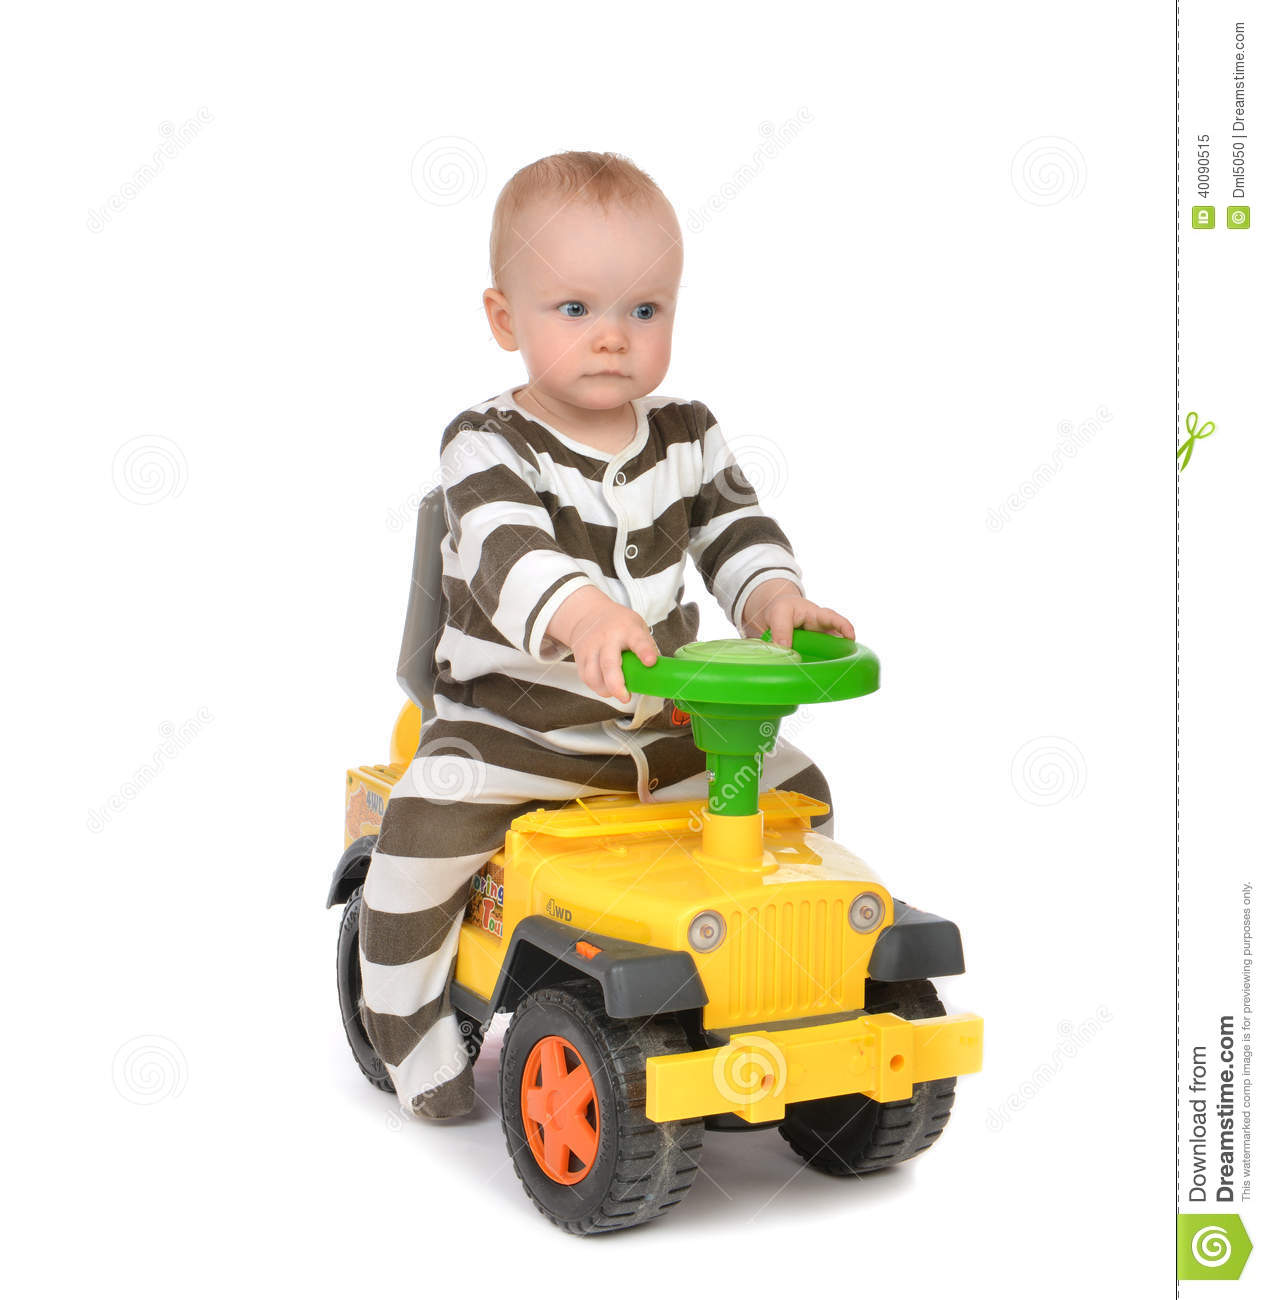 Boy Toddler Toys : Infant child baby boy toddler happy driving big toy car